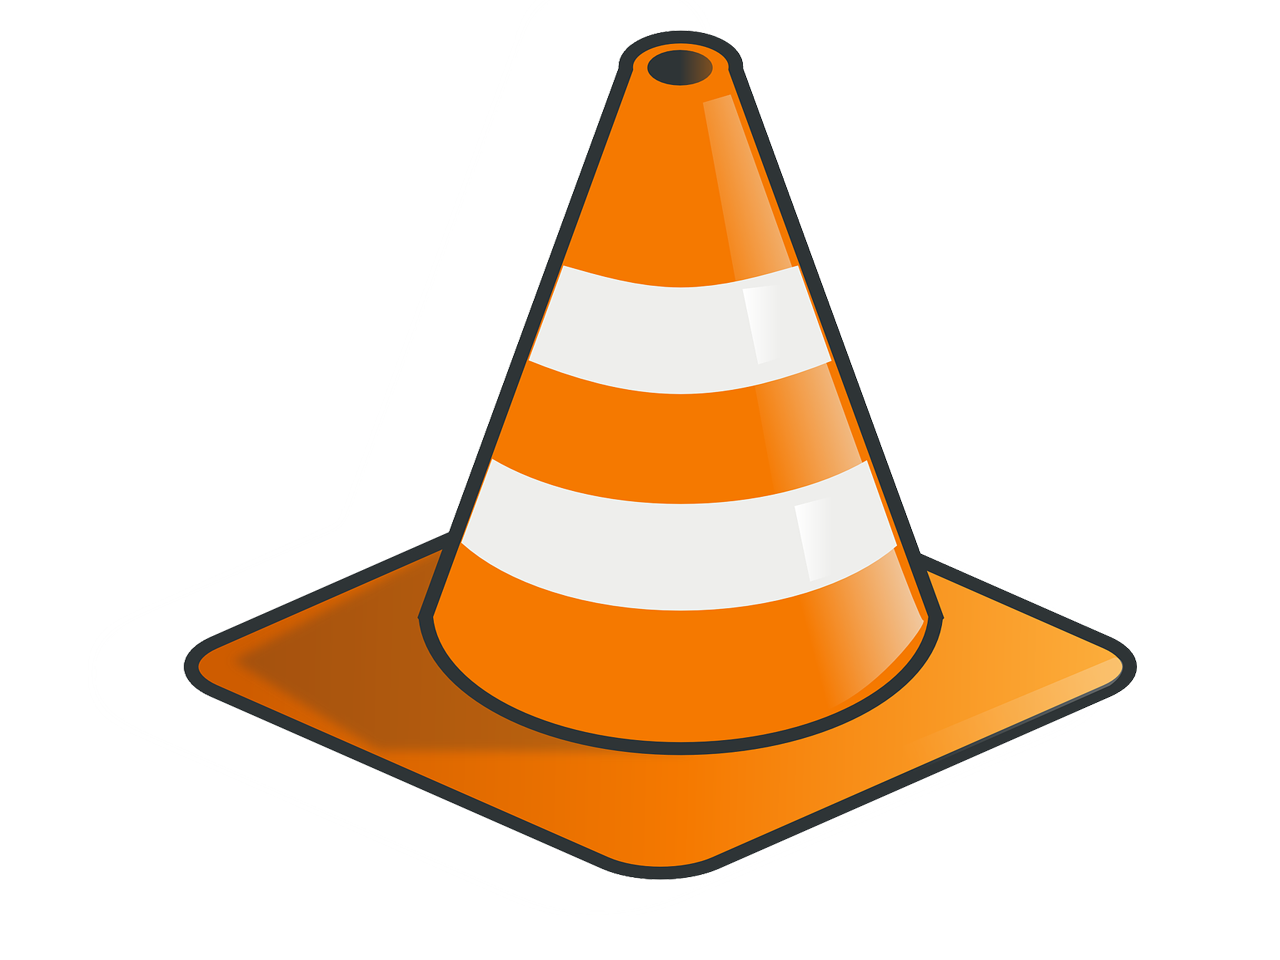 How to Install VLC Player in Ubuntu Linux